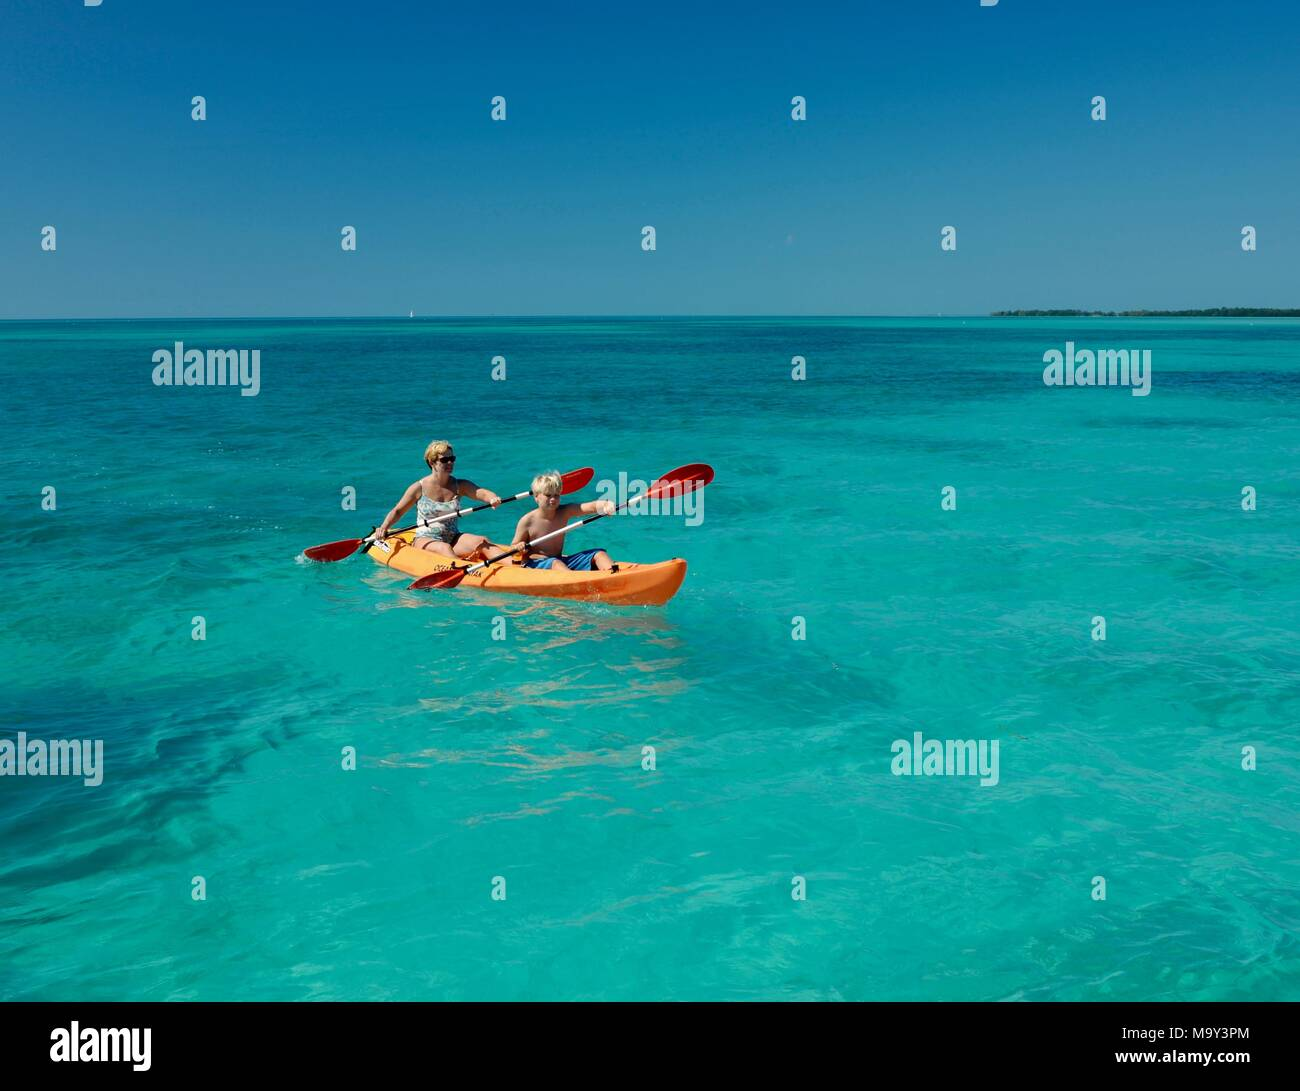 Mother and son kayaking in pristine, warm ocean water off Key West, Florida, USA - Stock Image